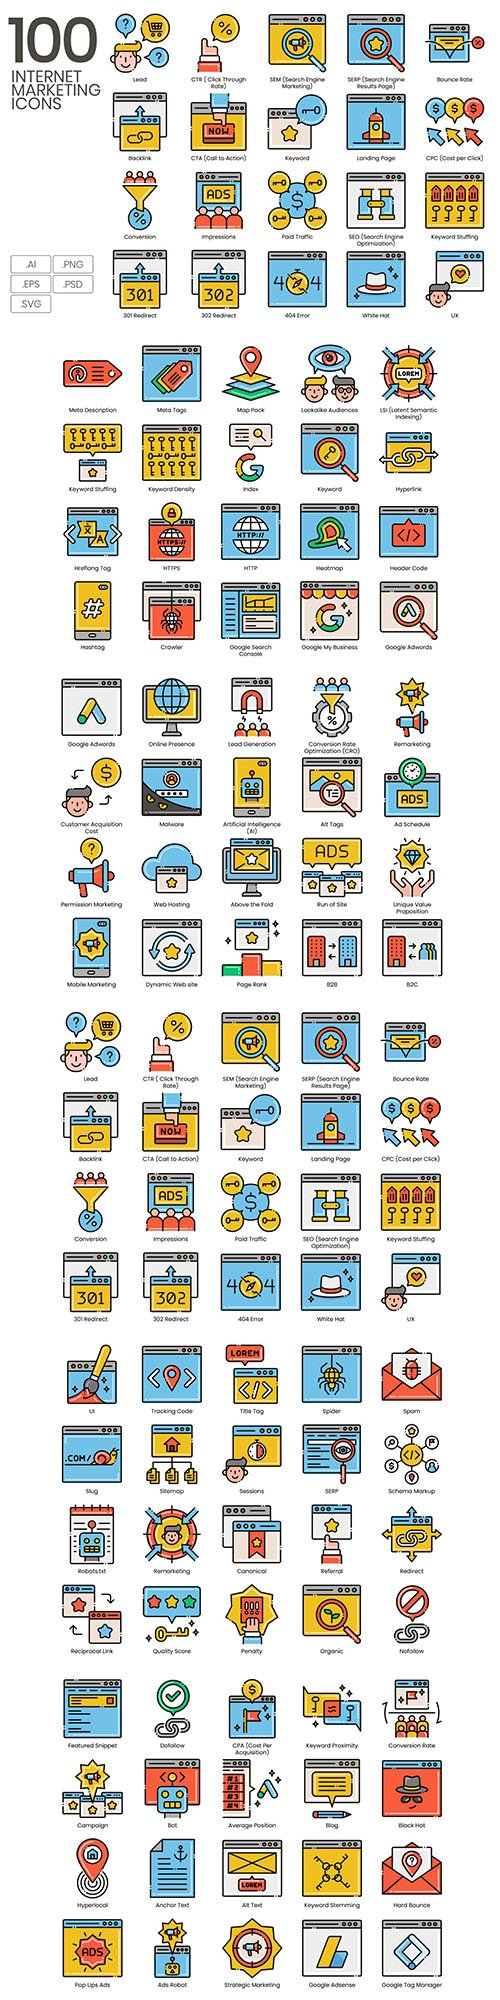 100 Internet Marketing Icons | Aesthetics Series